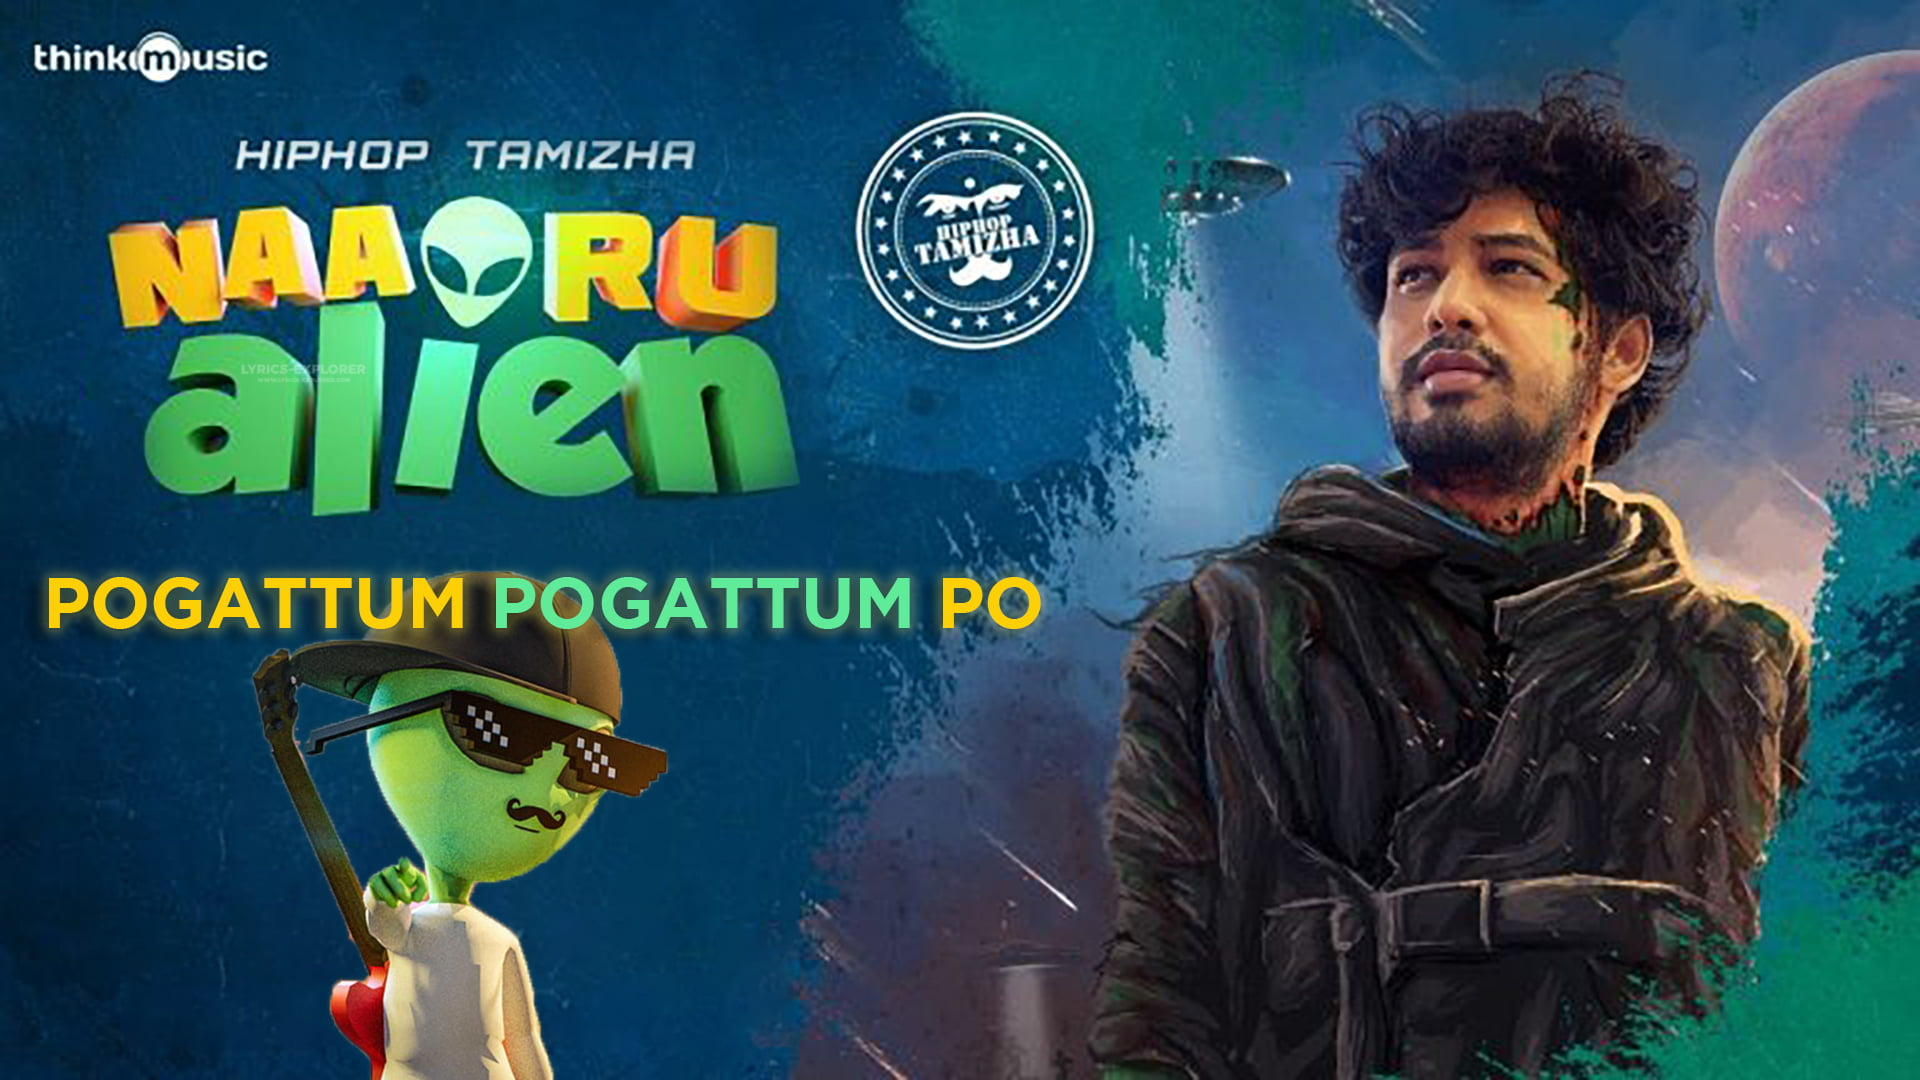 You are currently viewing Pogattum Pogattum Po song lyrics free Naa Oru Alien Hiphop Tamizha